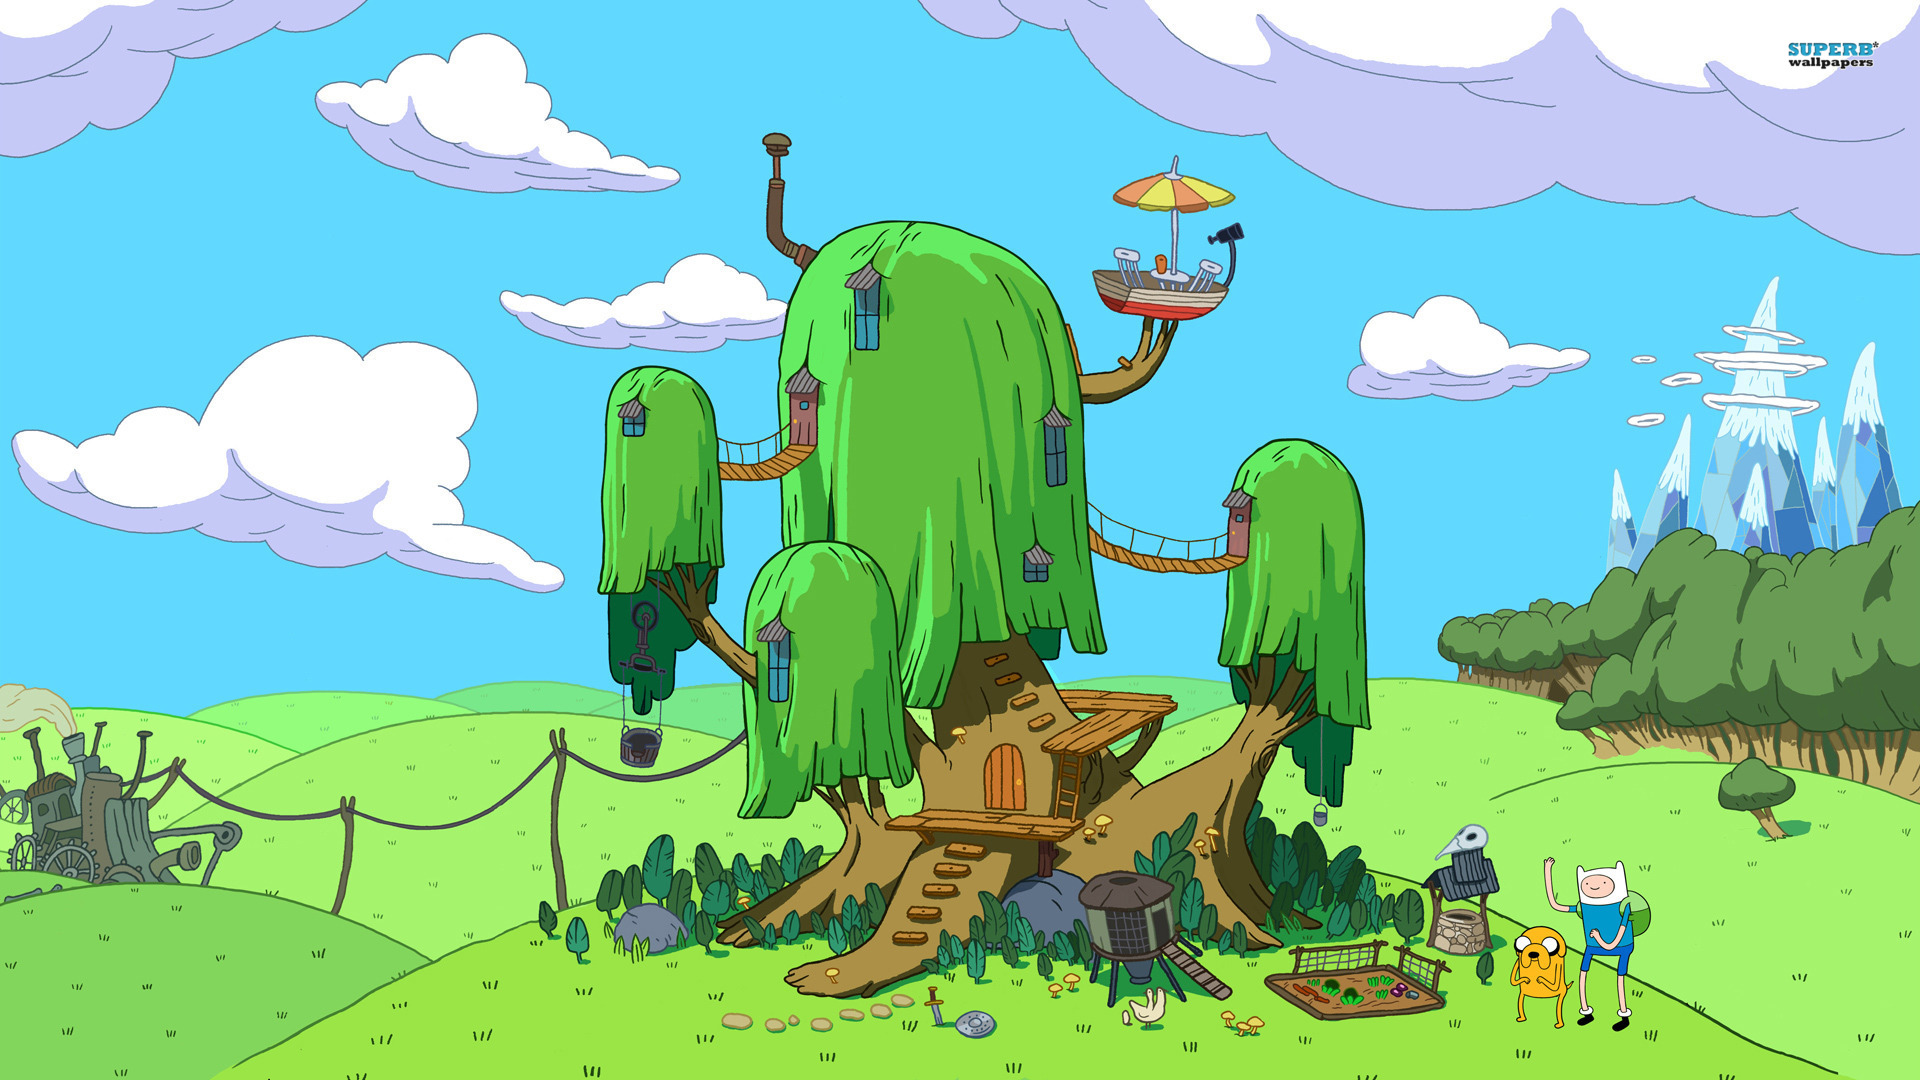 Adventure Time wallpaper 1920x1080 jpg